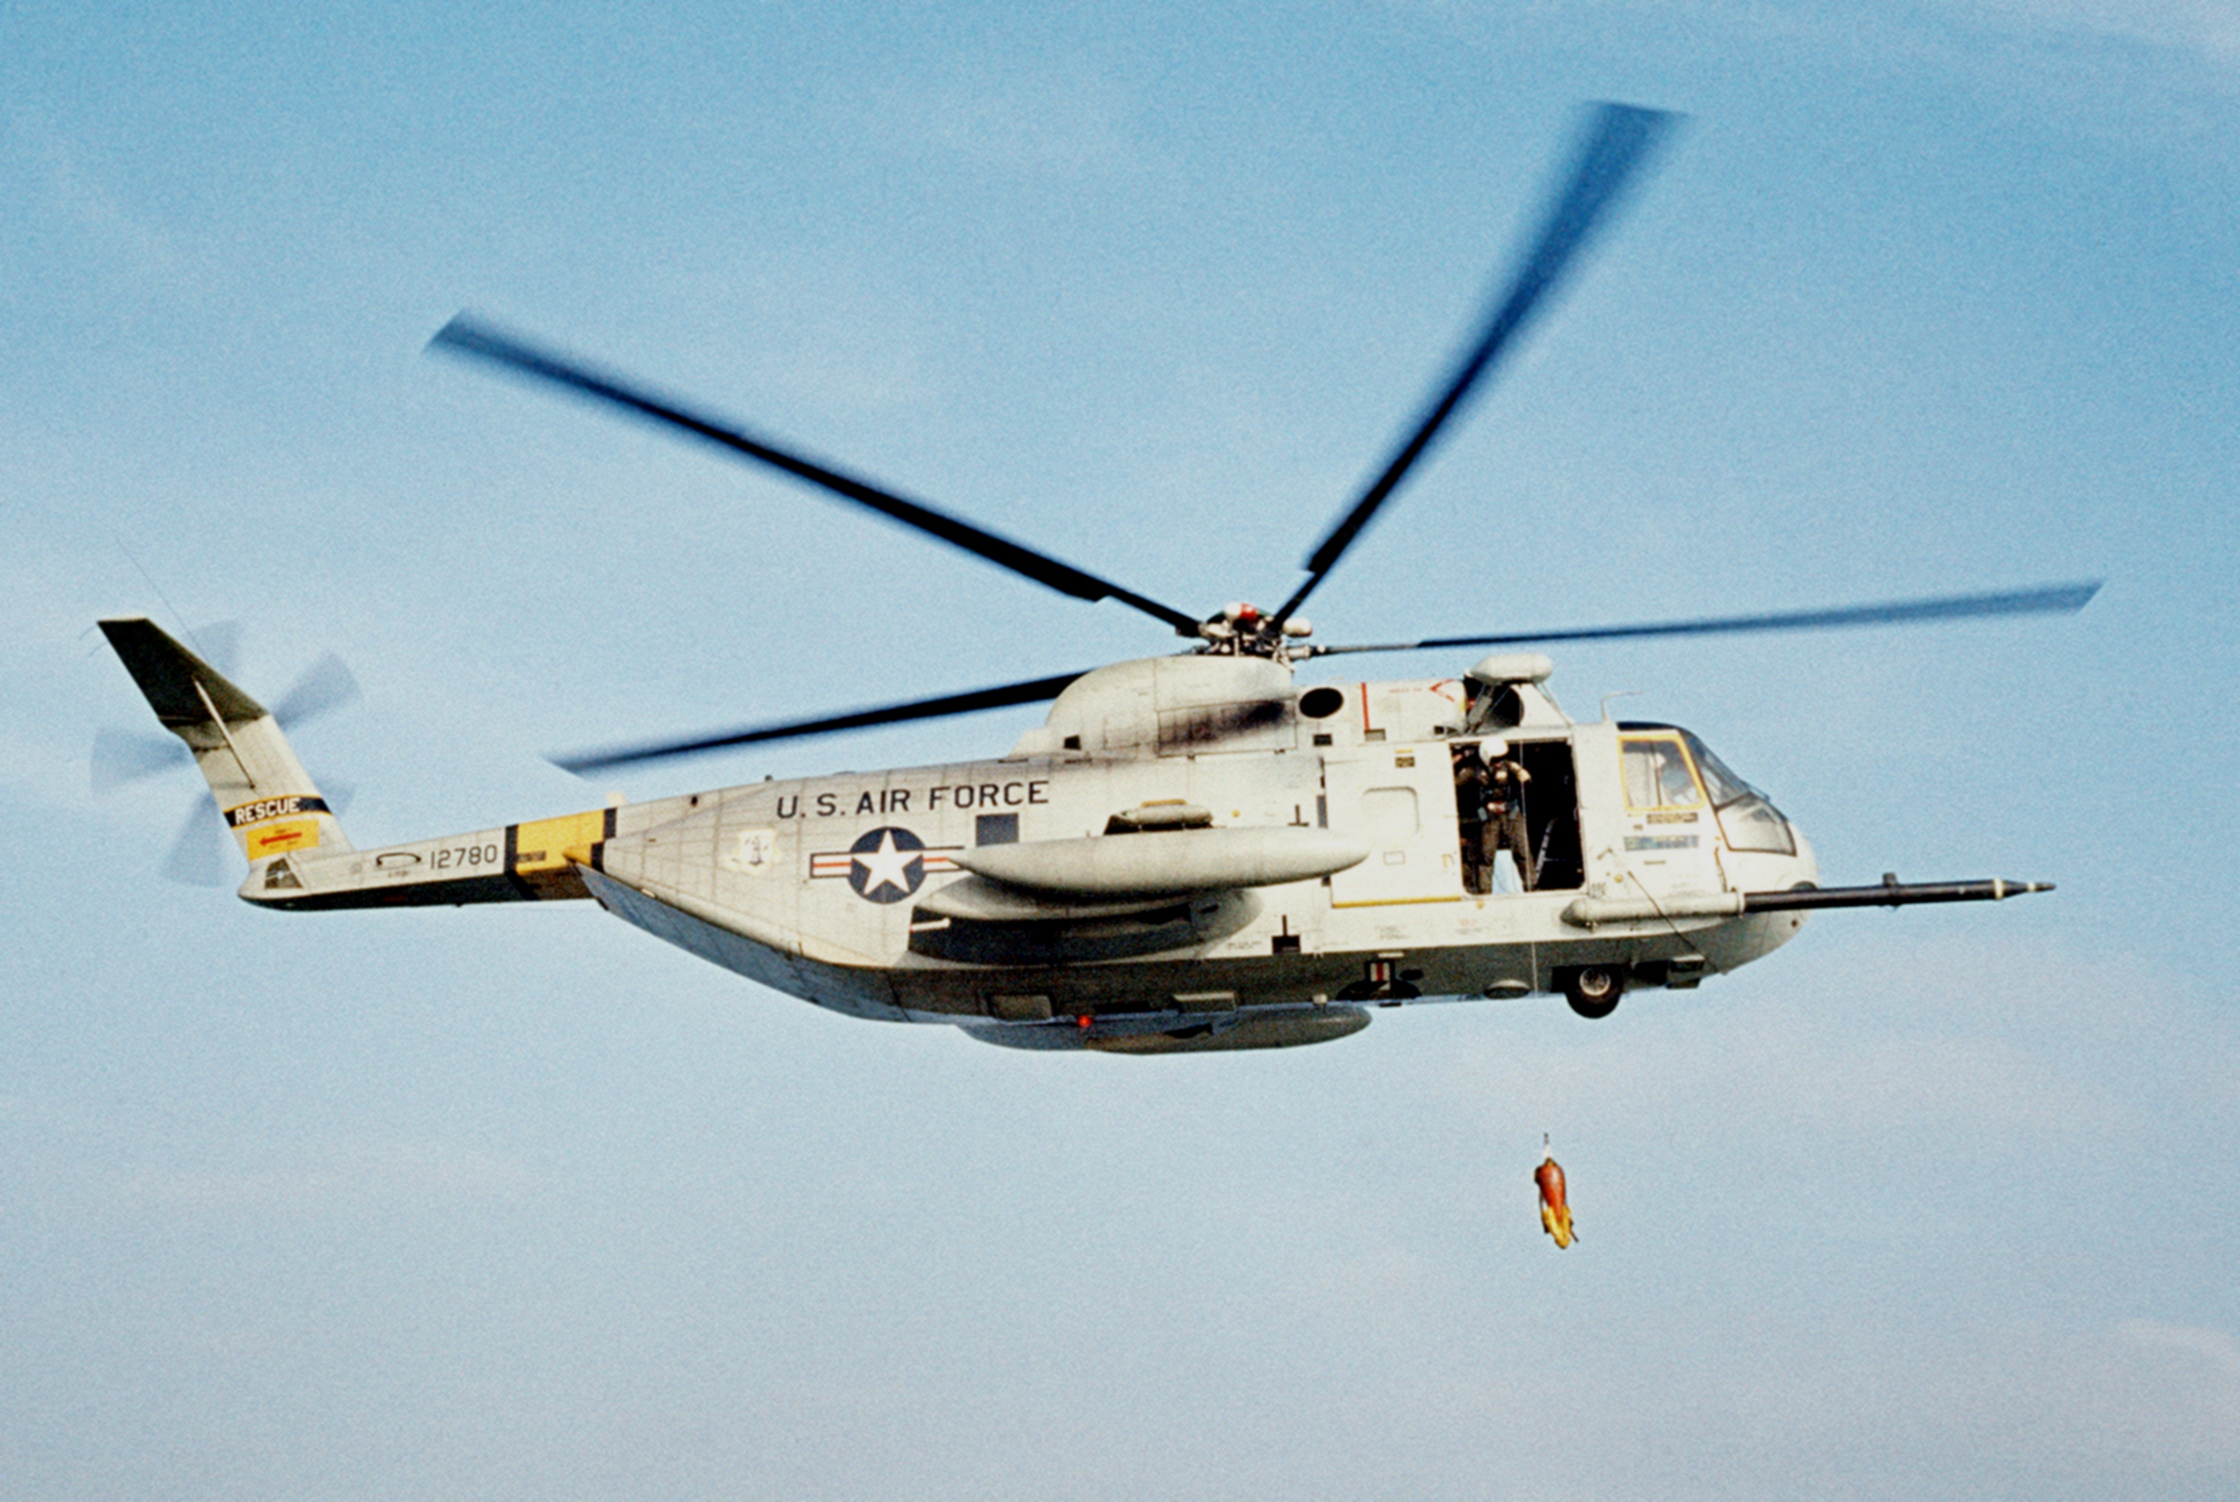 giant helicopter with File Hh 3e 129th Arrg Off California 1977 on File CH 3E over the Pentagon DC 1979 furthermore 885fa149cbf29da4e02c18e07a0bfeb7 as well Georgia May Jagger Channels Fifties Siren Brigitte Bardot New  mercial Cosmetics Giant Rimmel furthermore Vehicle Wrap together with Dragwars.